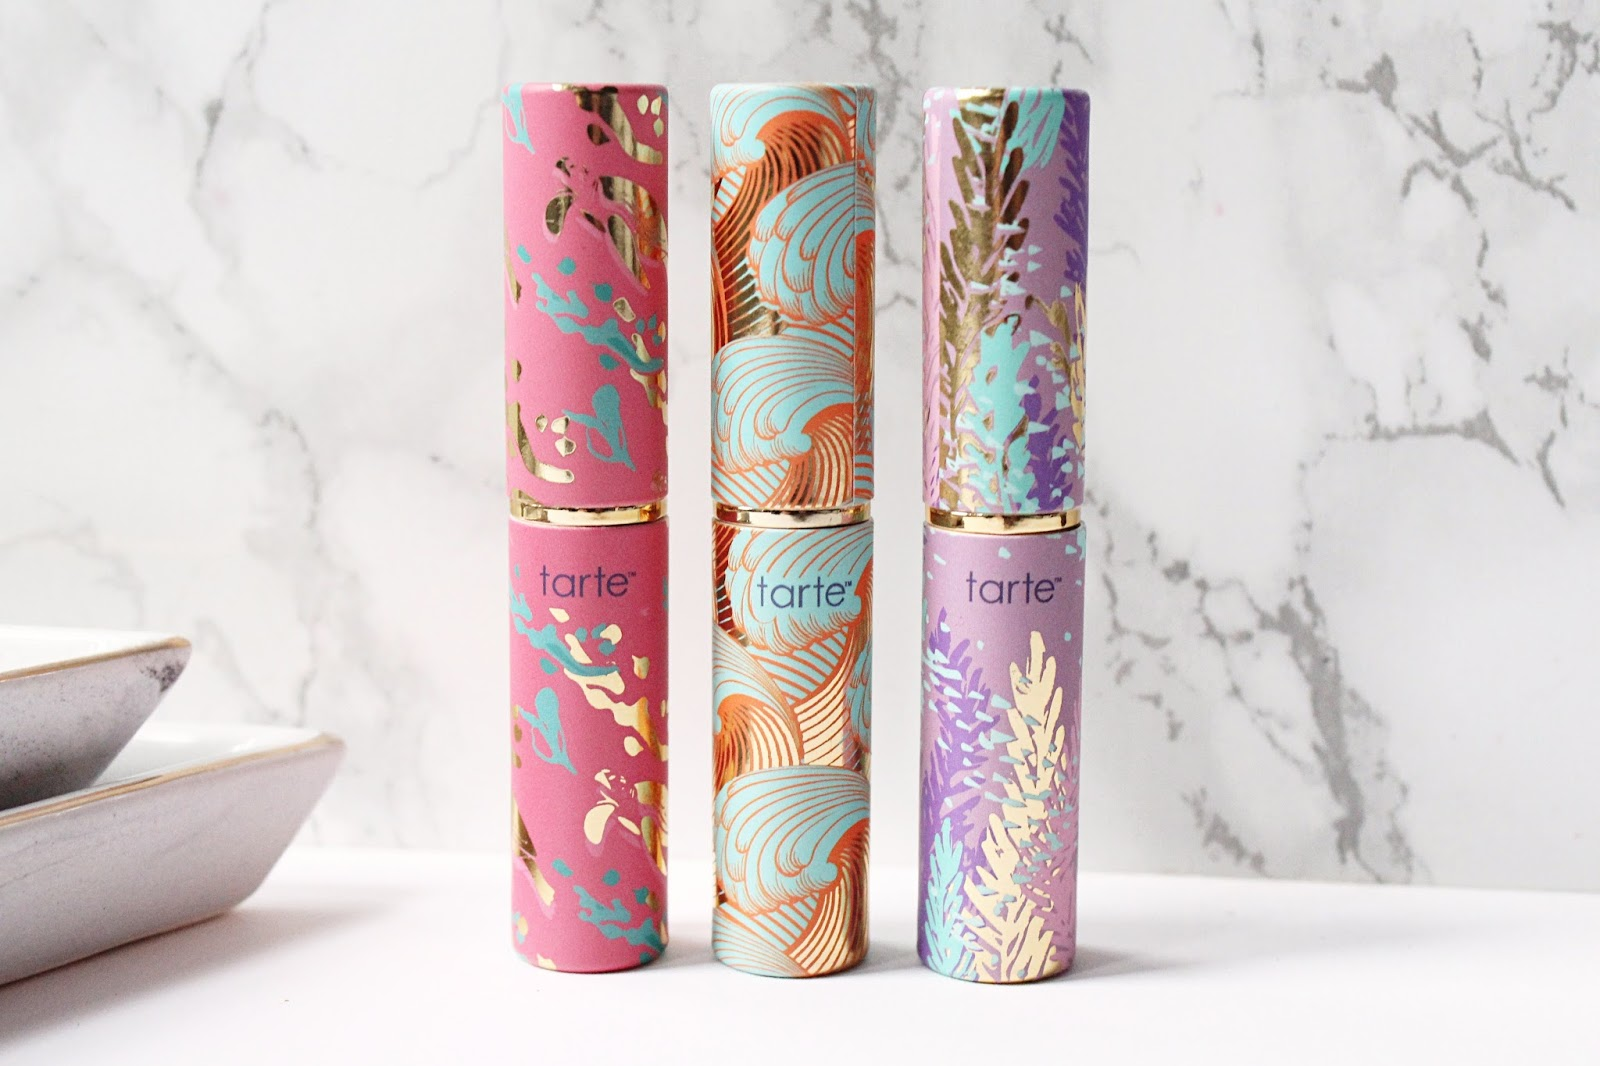 Tarte Rainforest of the Sea Quench Lip Rescue Trio Vol. II